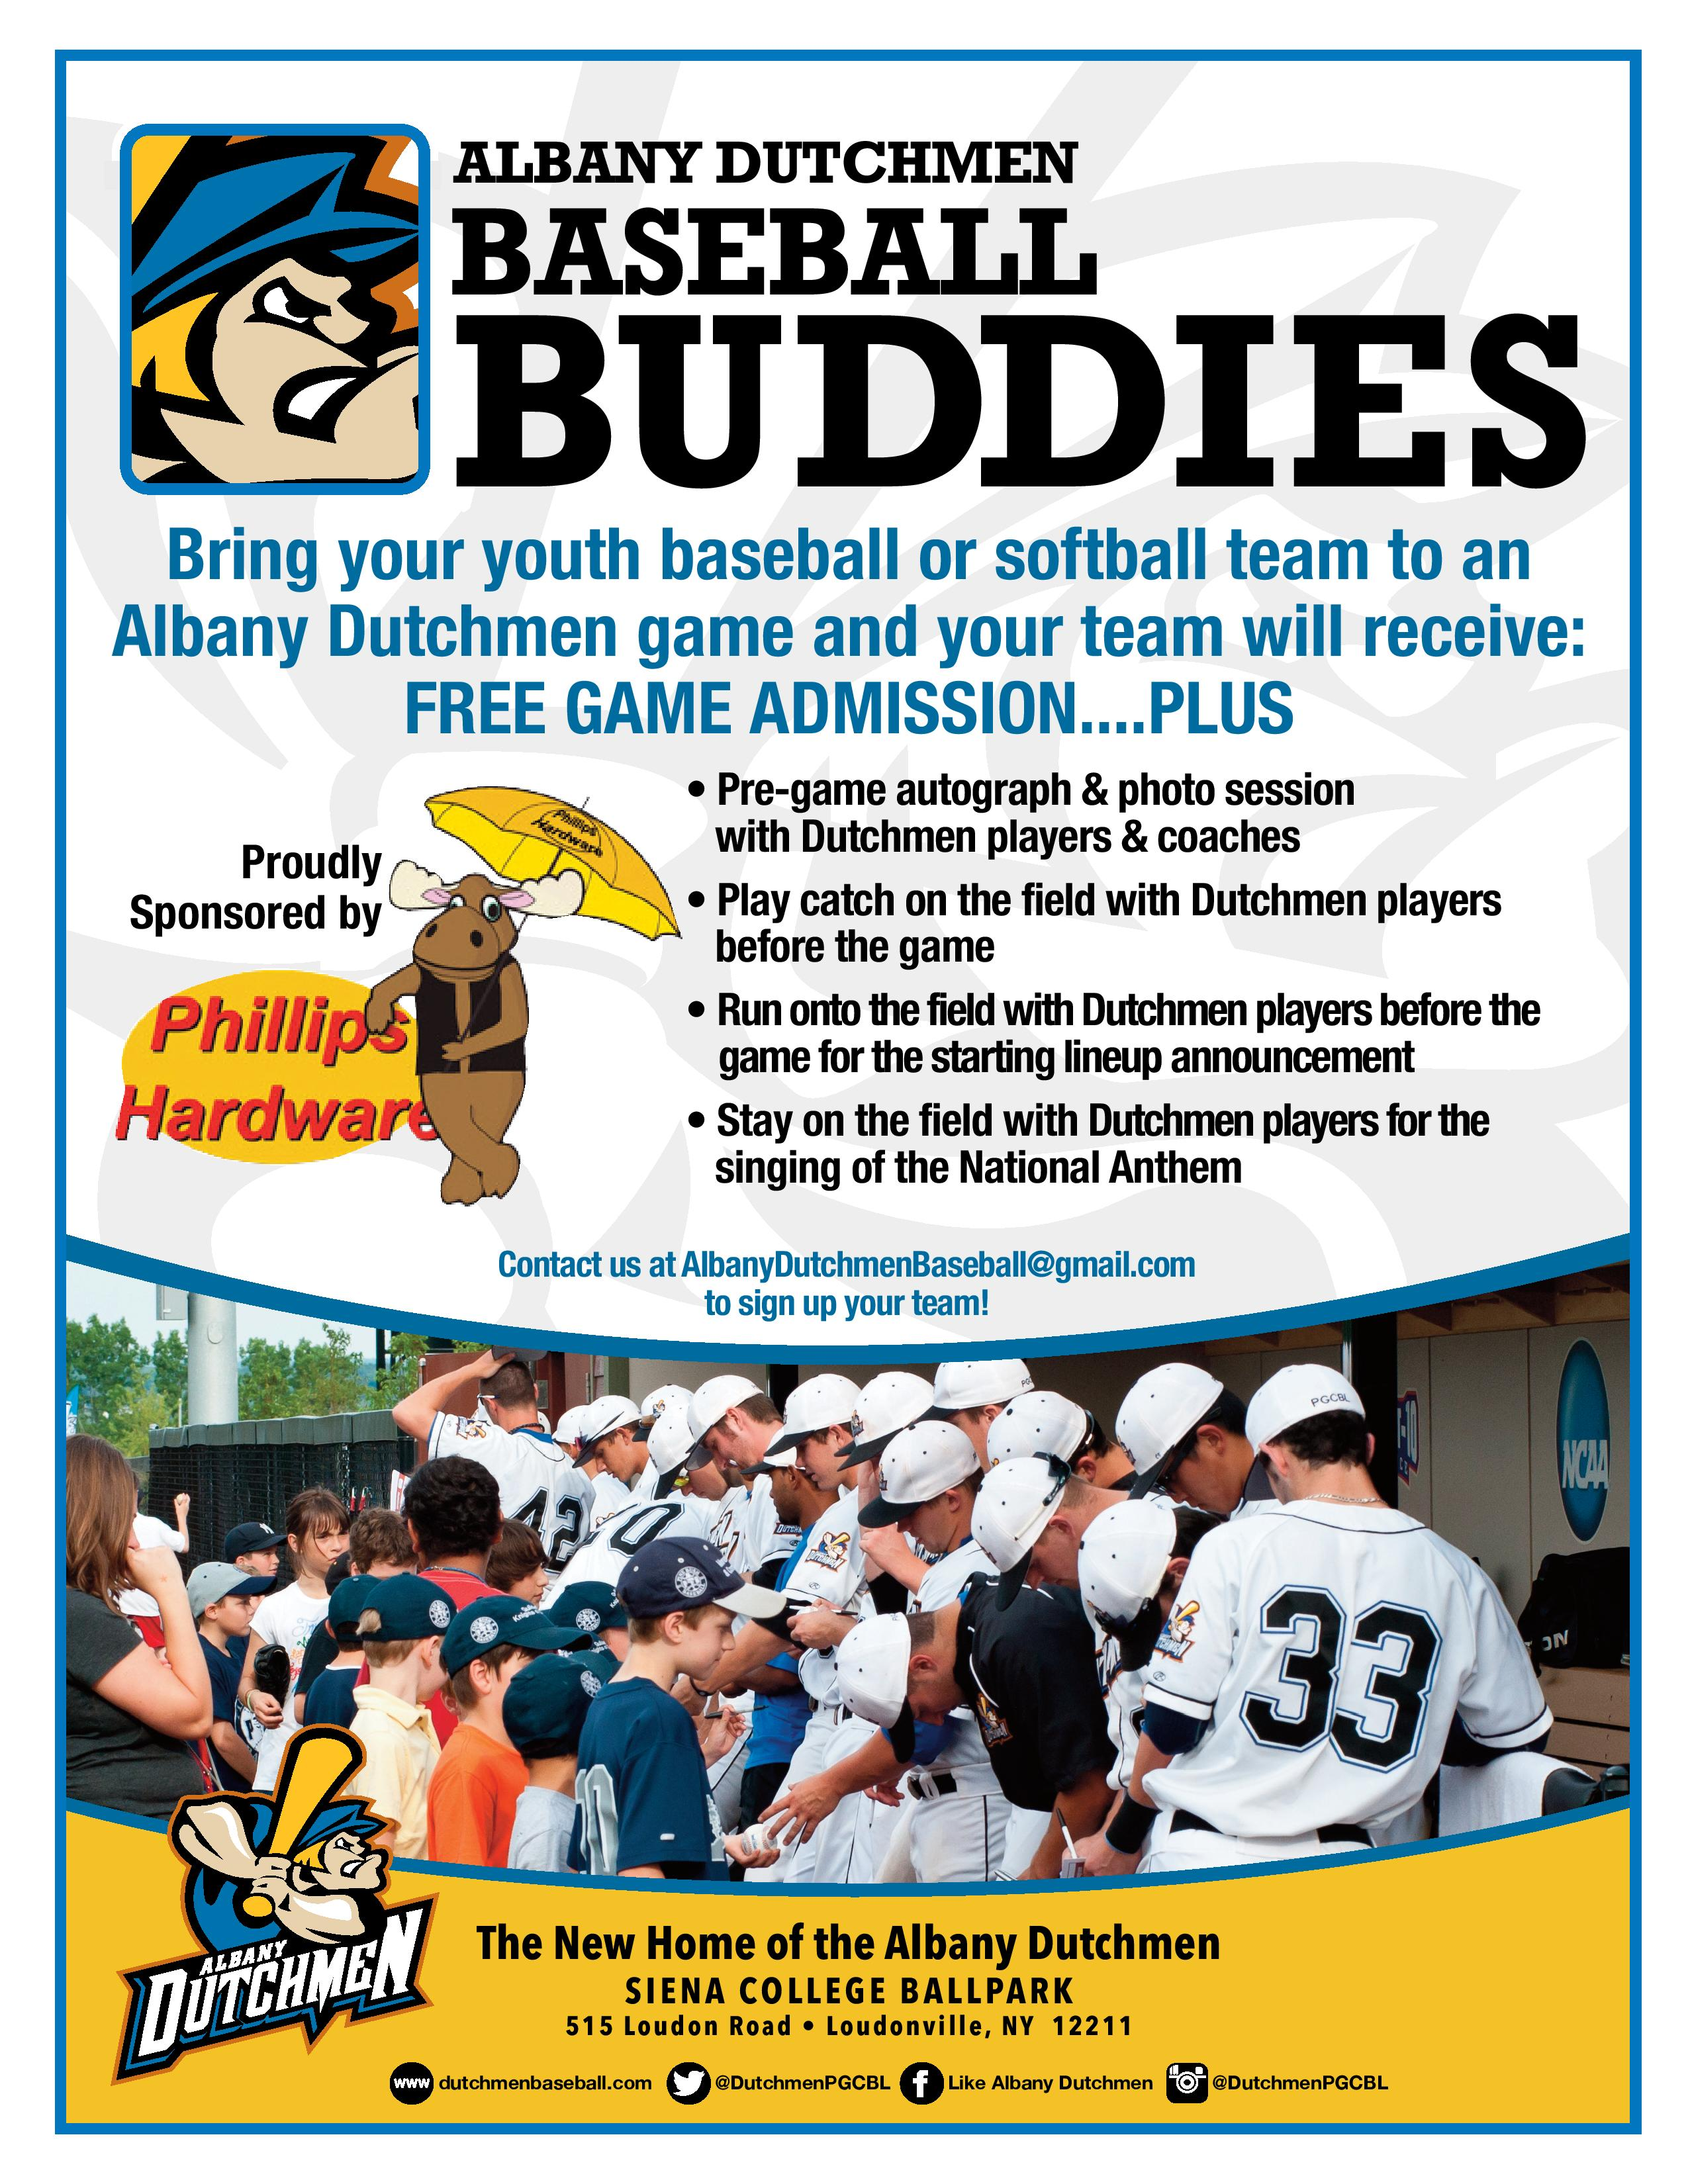 2017 Dutchmen Baseball Buddies Flier.jpg